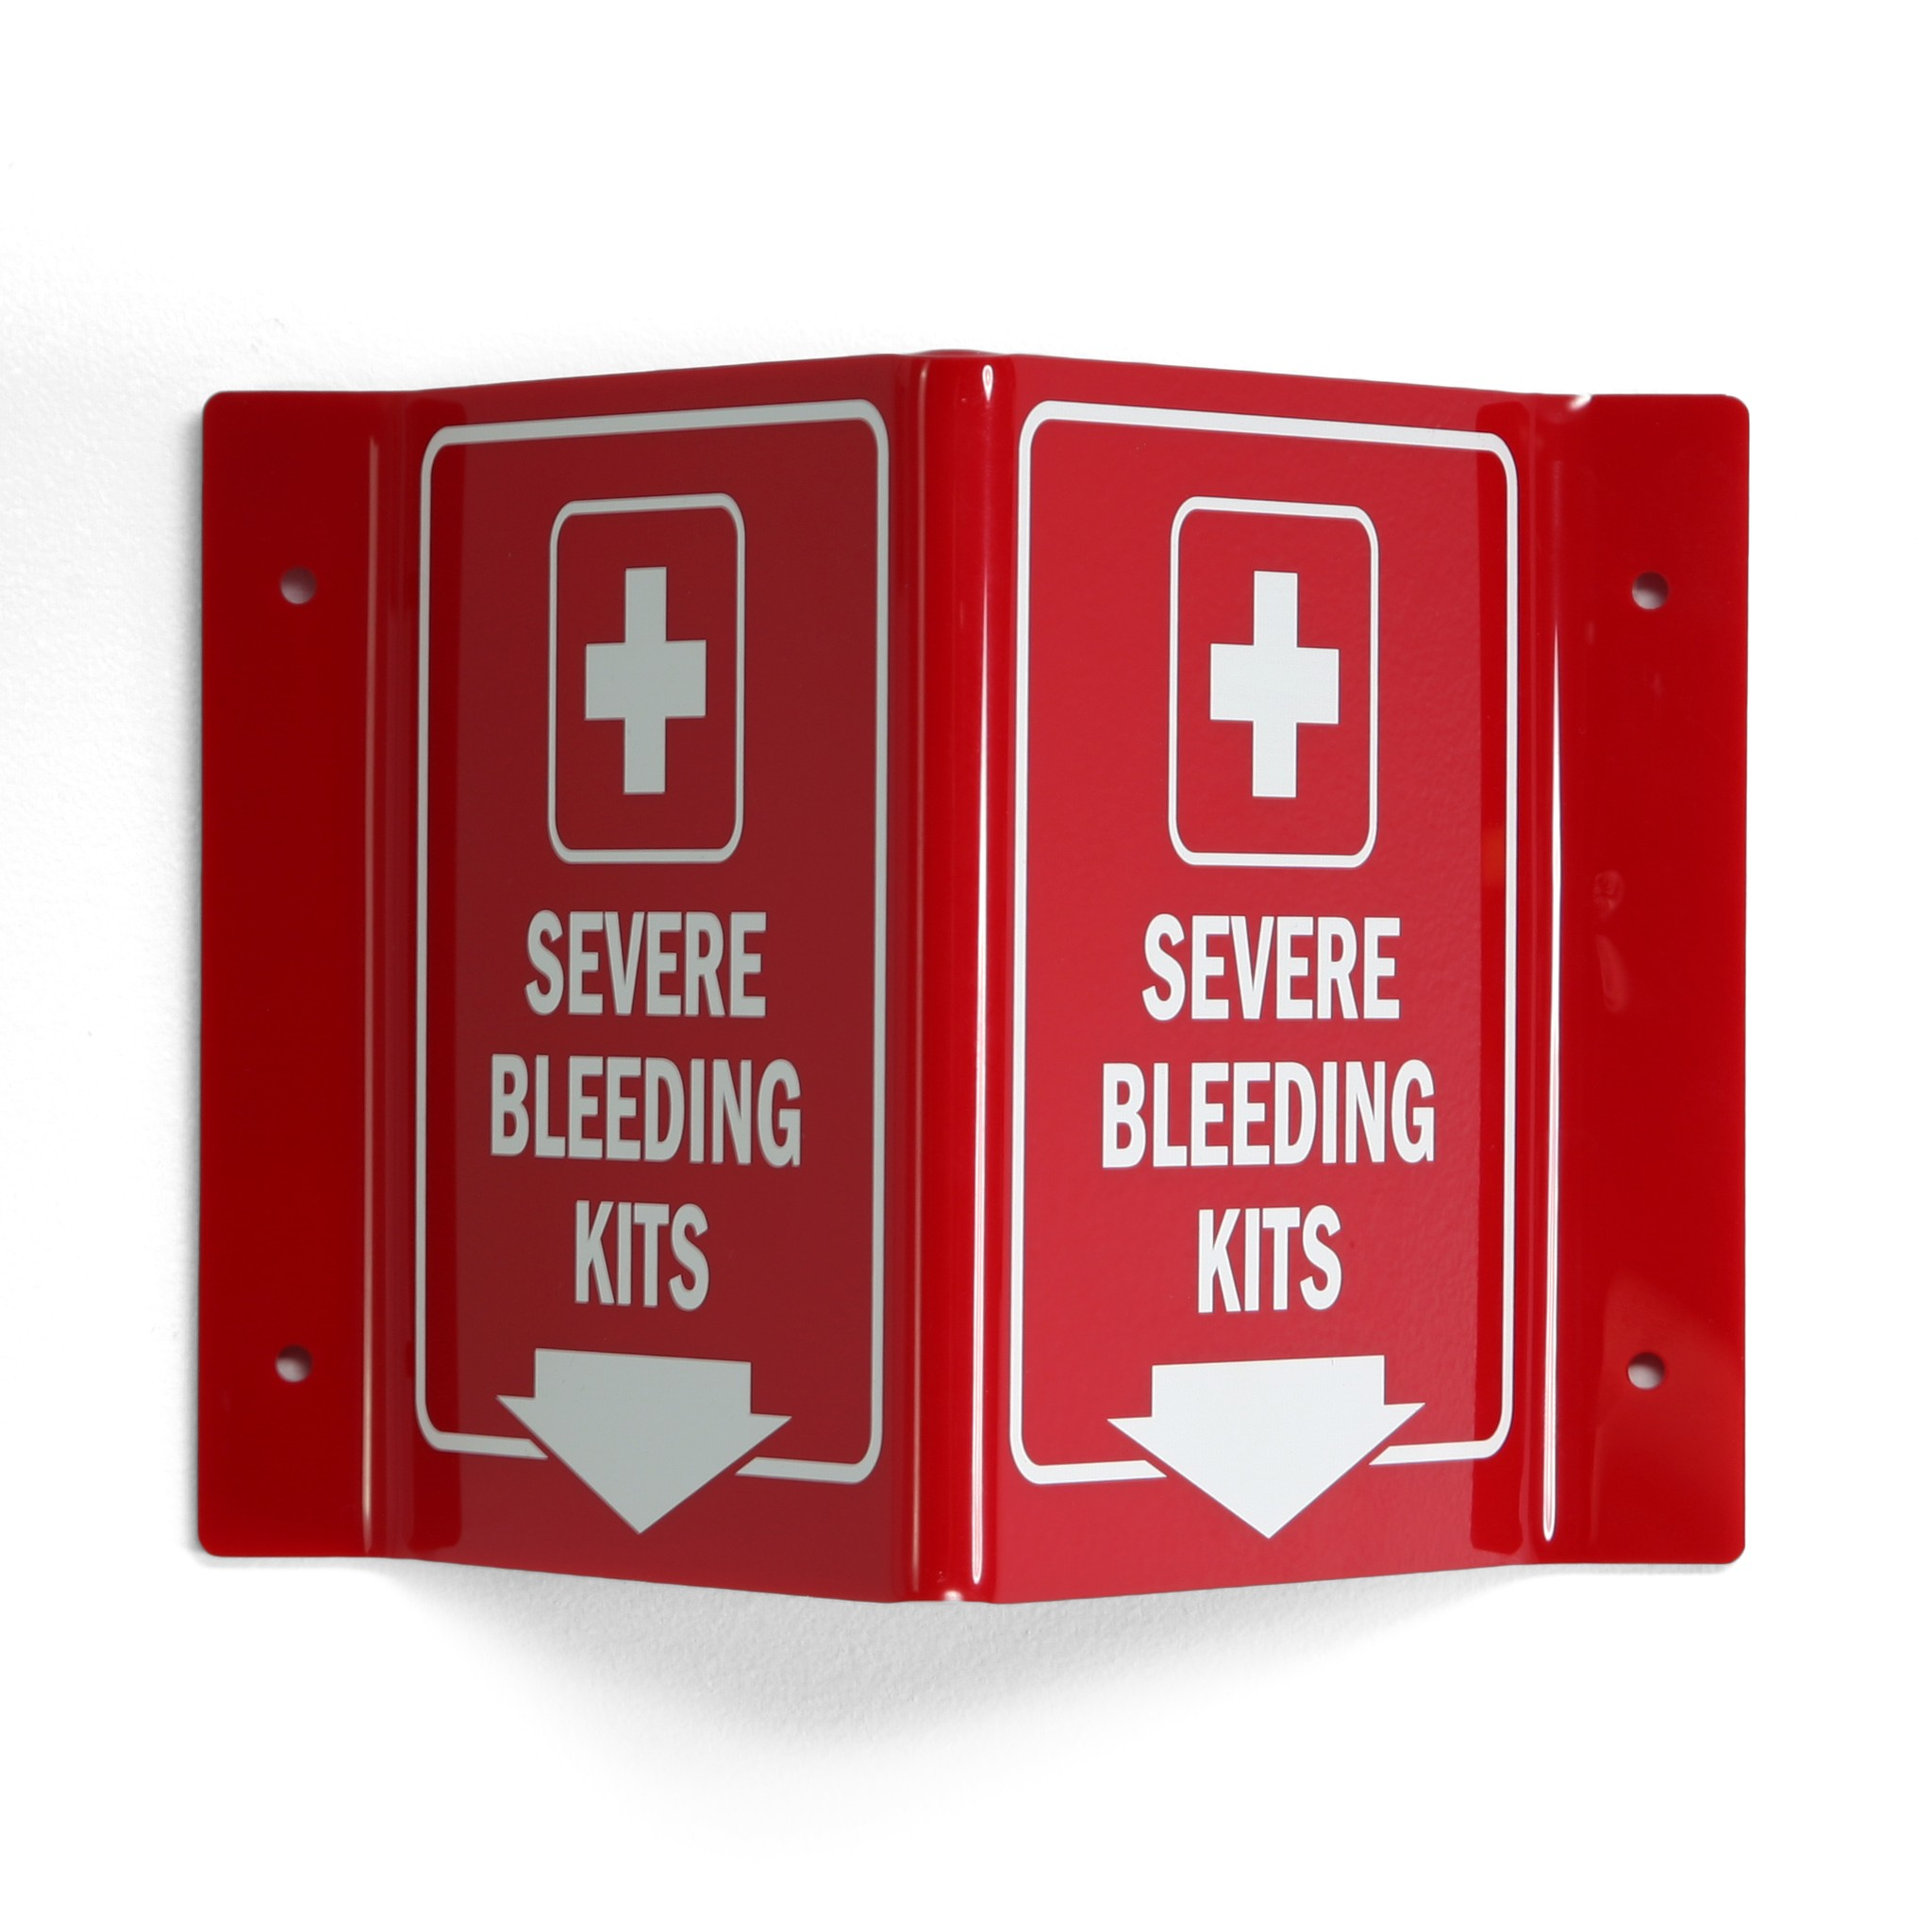 Severe Bleeding Kits Sign